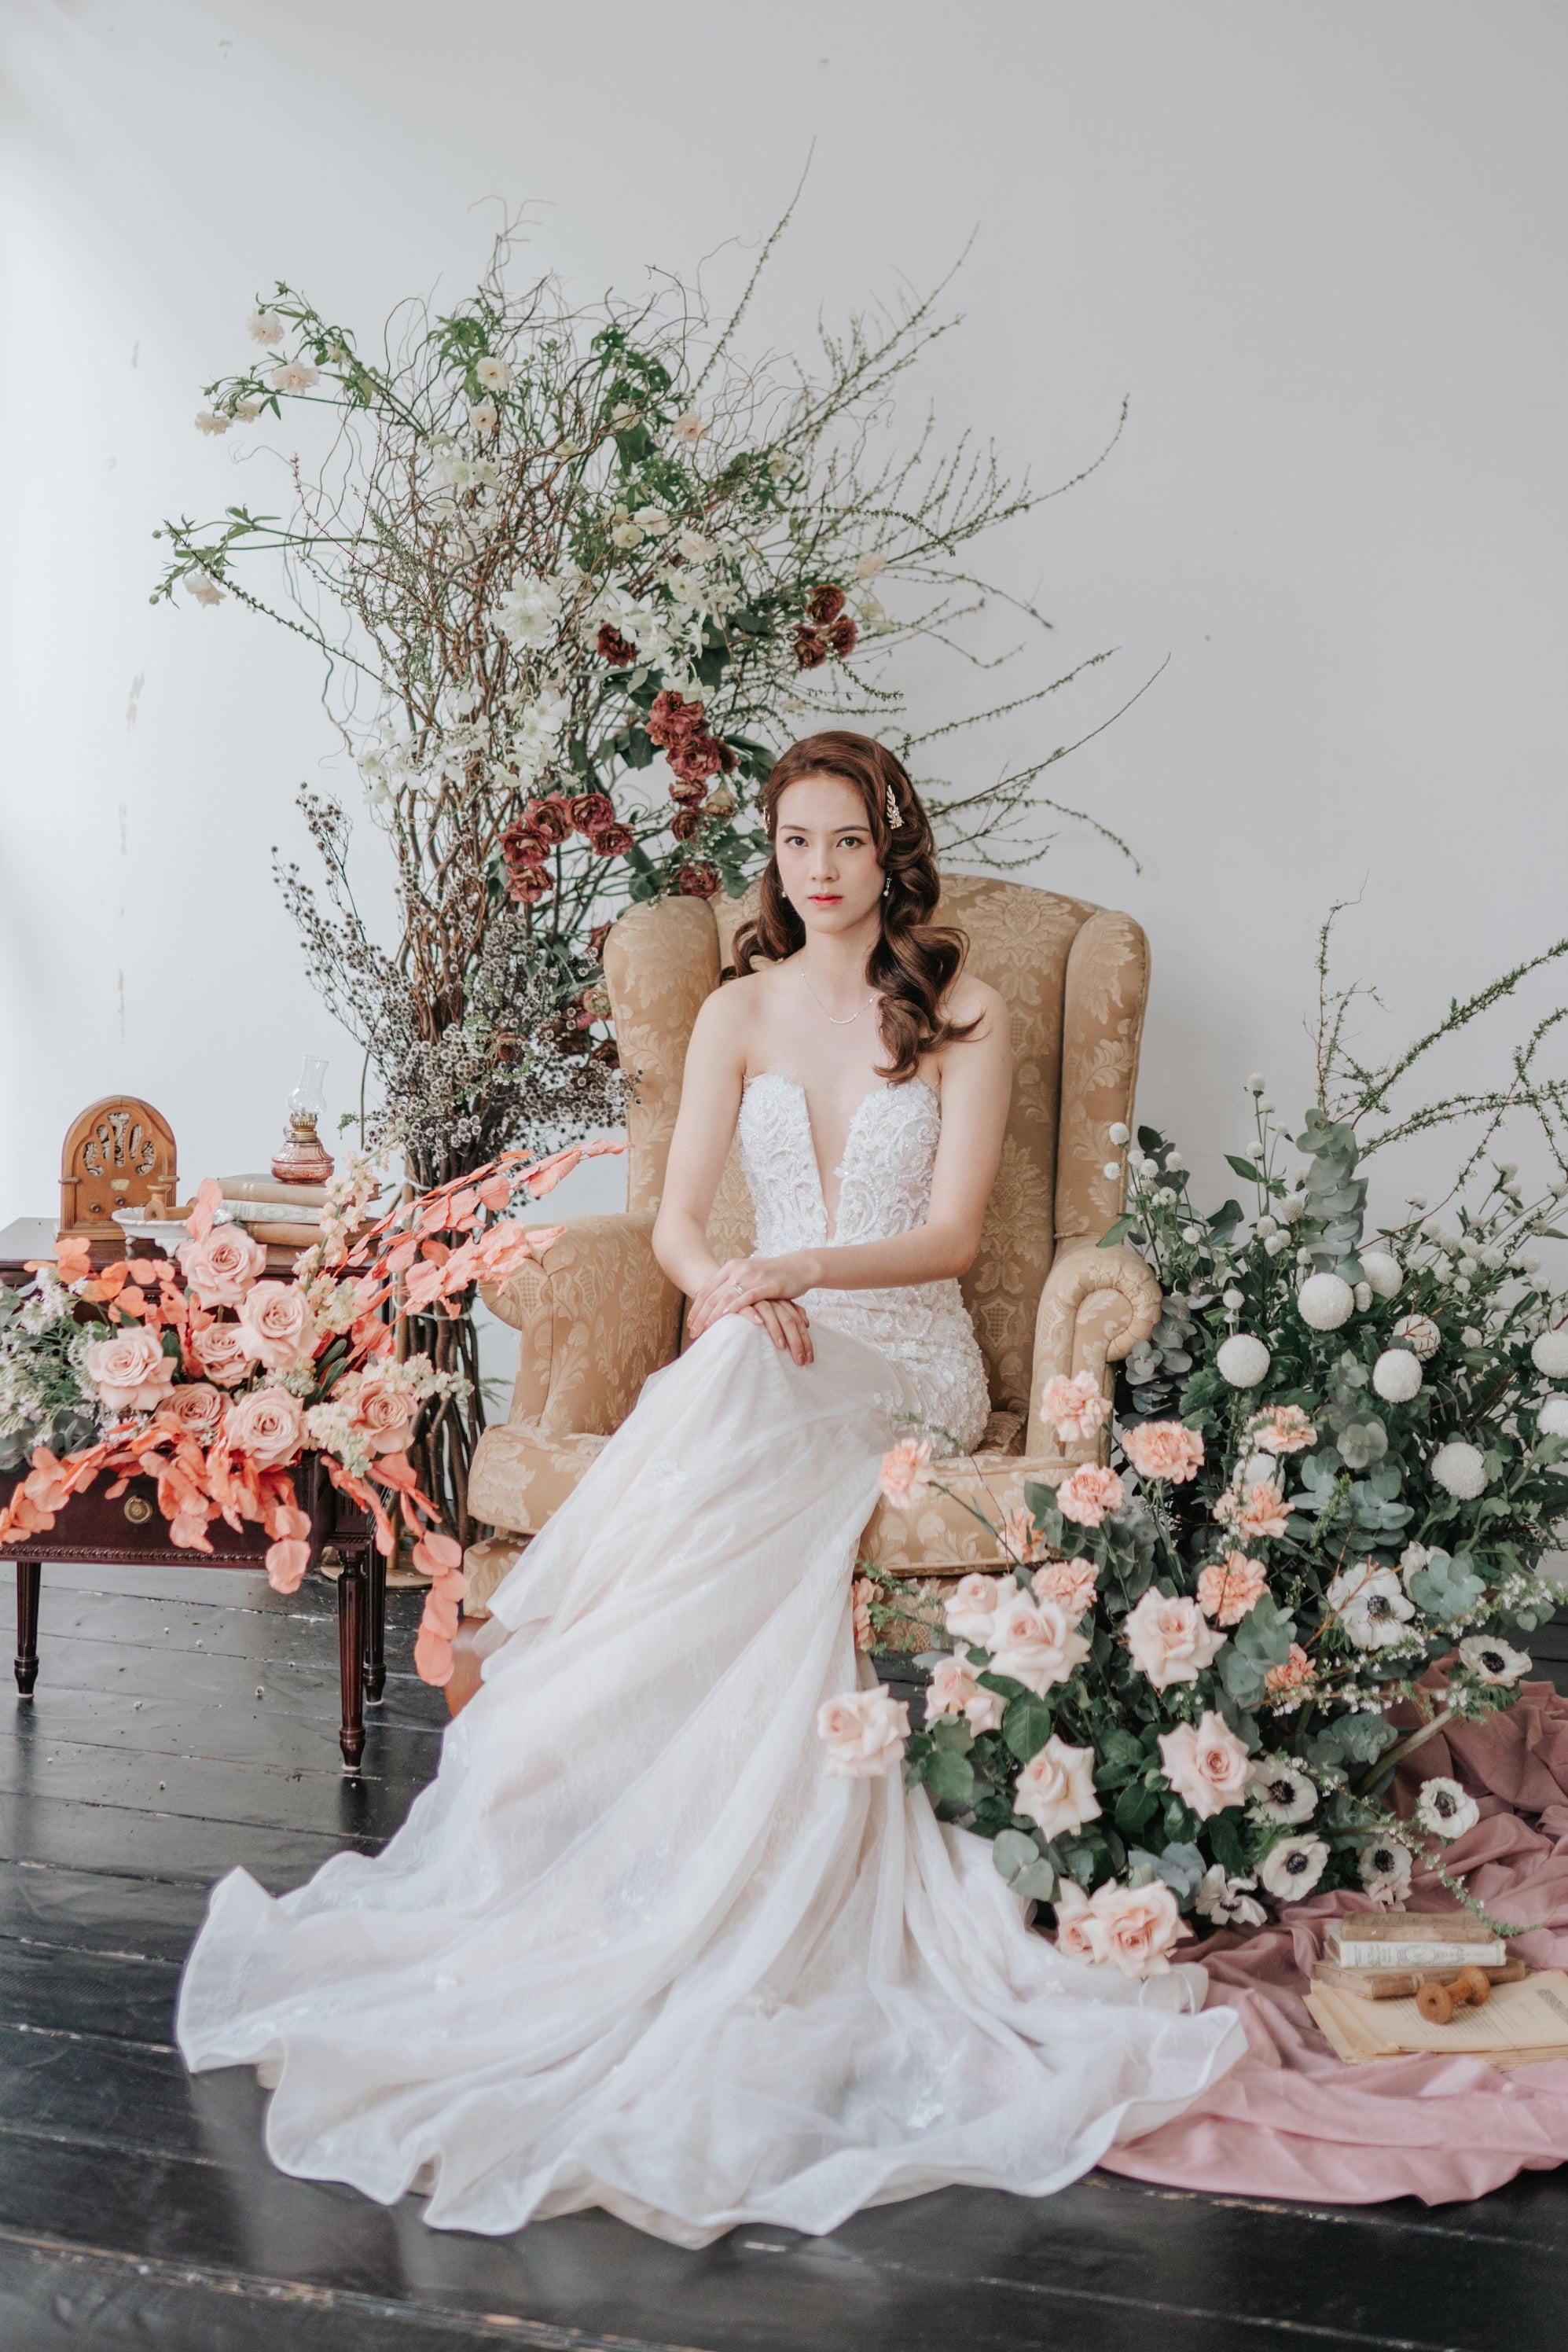 Bride in strapless, ivory wedding gown sitting on a gold armchair surrounded by styled flowers